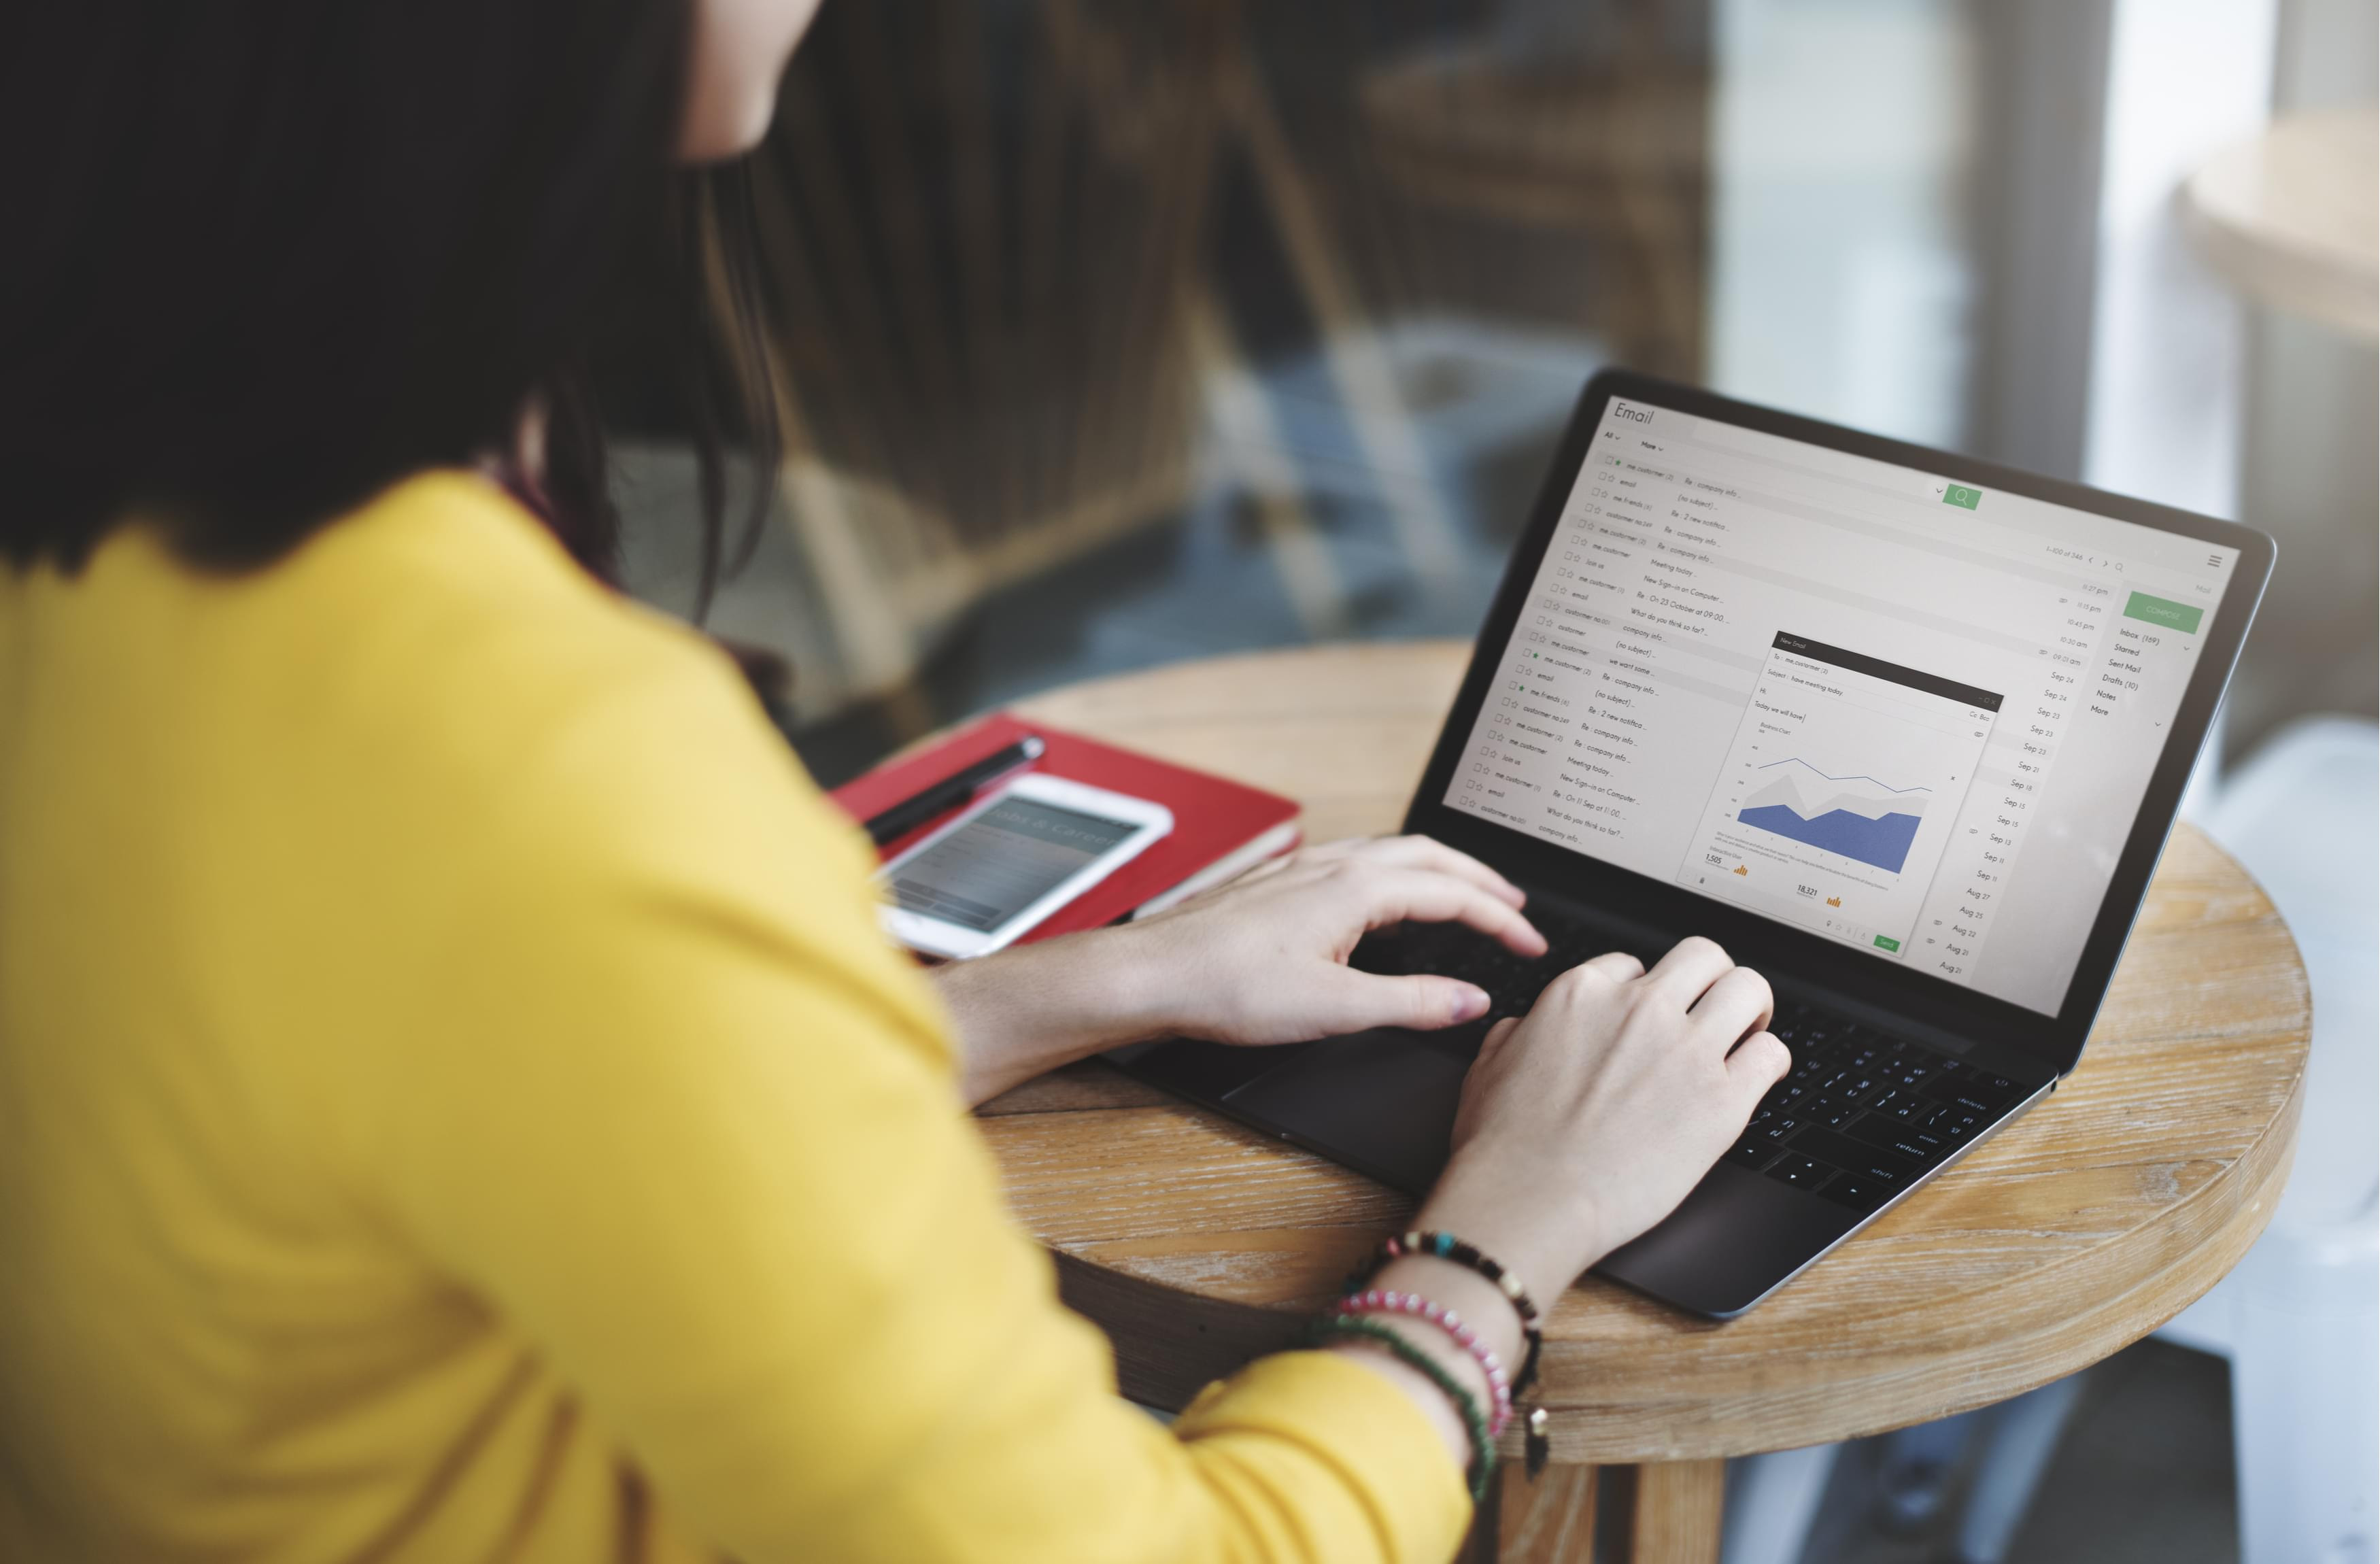 5 Features to Look for in an Email Marketing Platform